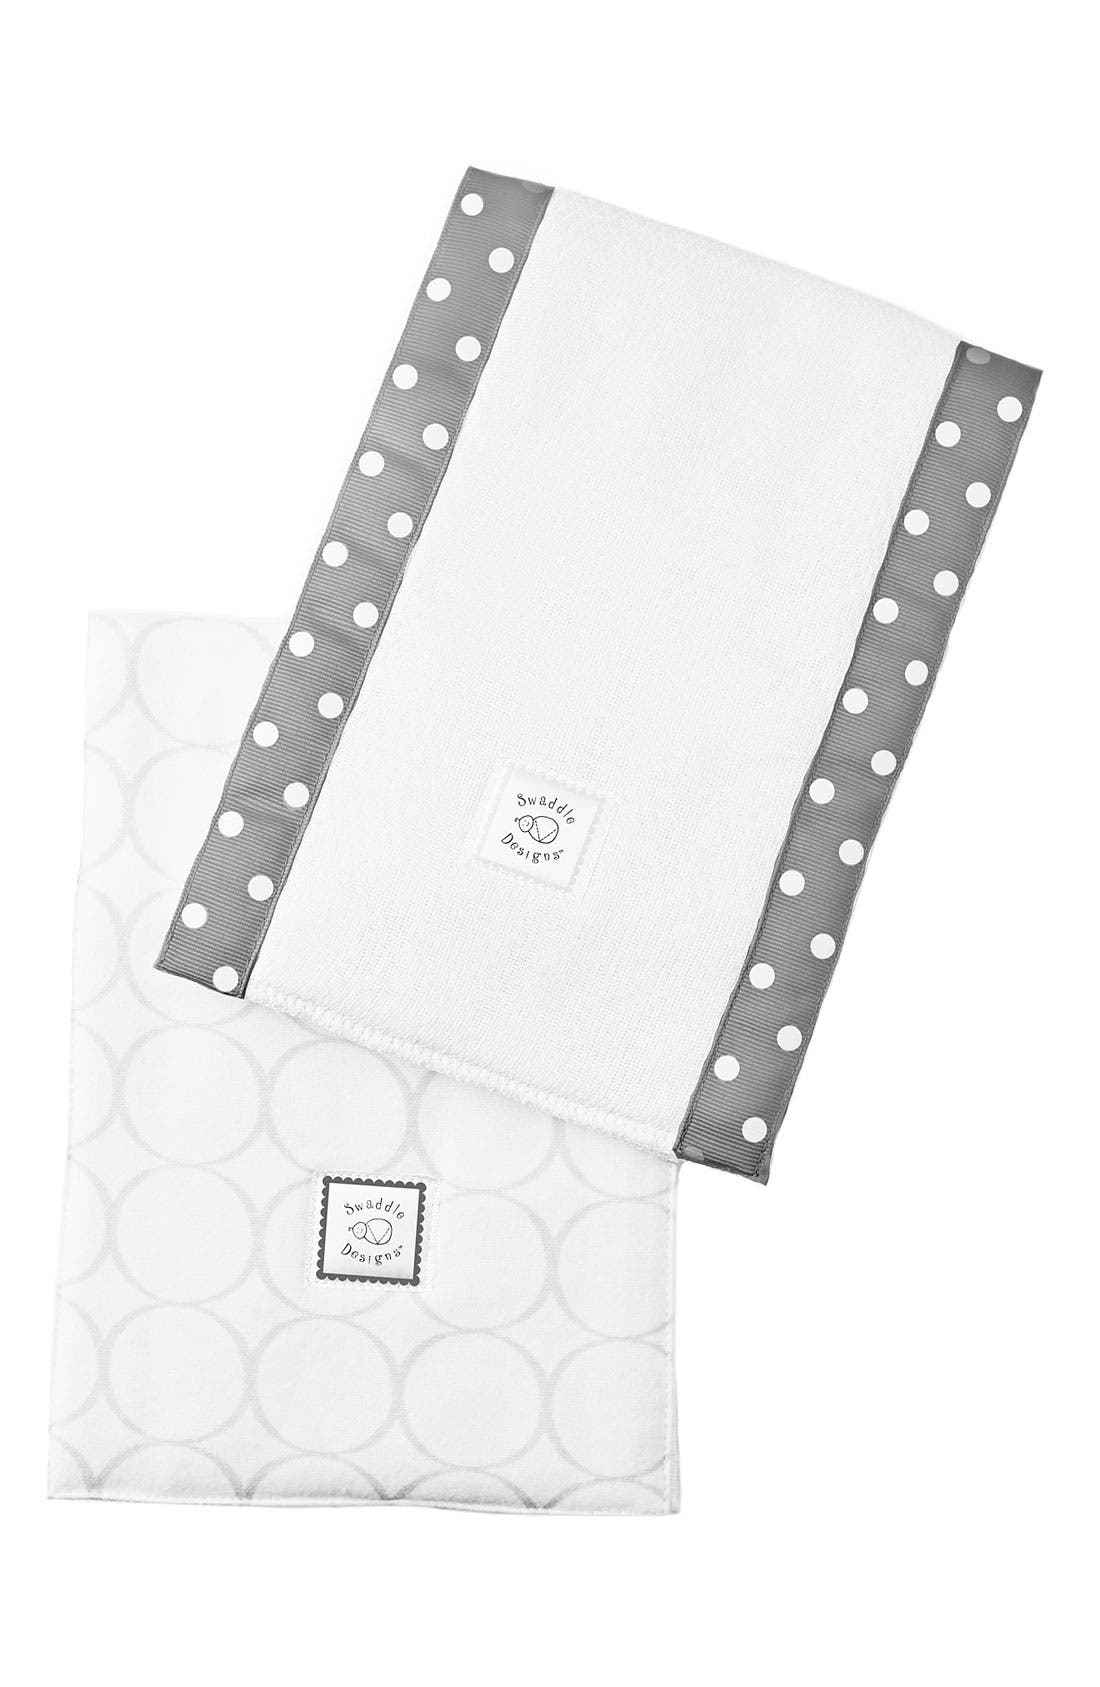 Main Image - Swaddle Designs Burp Cloth (Set of 2)